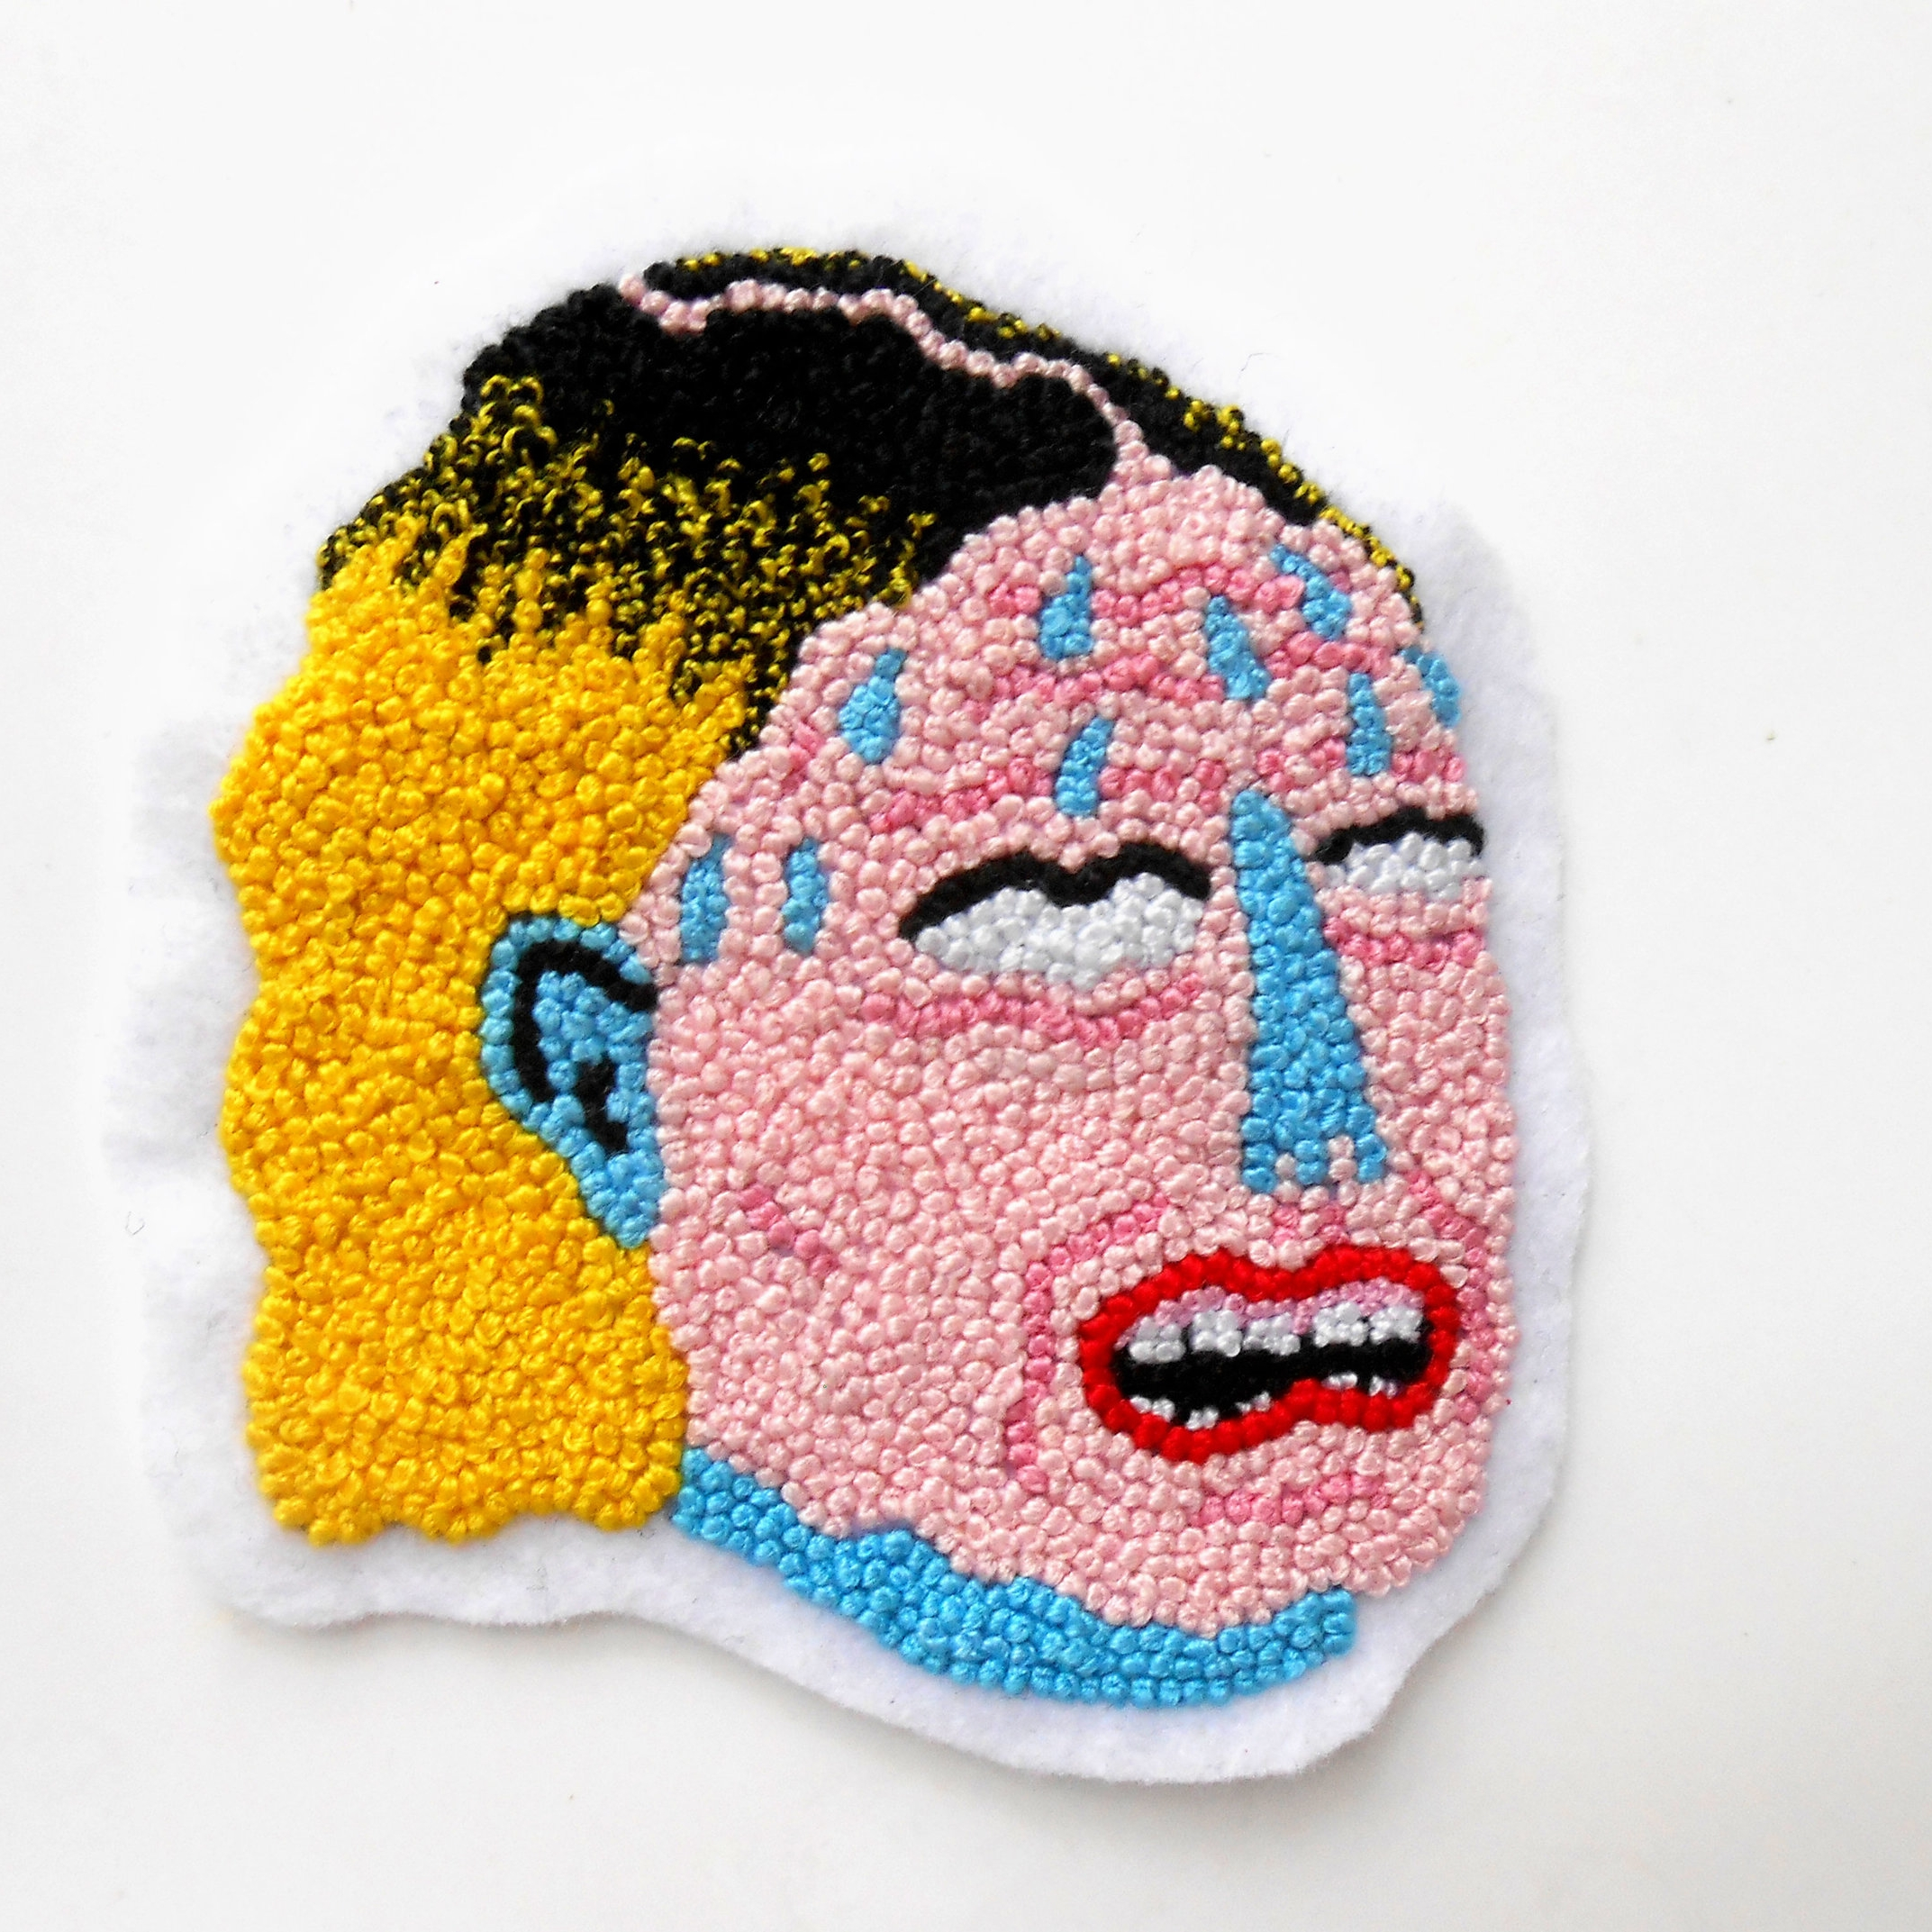 Patricia Larocque of Ffembroidery - Patricia Larocque is a Canadian embroidery artists currently struggling in Lyon, France. She works from her home studio which is really just her kitchen table let's be real. She currently enjoys creating anxiety ridden patches that are close to life representations of herself and her daily life. She enjoys being her own boss and hopes that one day she'll be about to quit her day job.